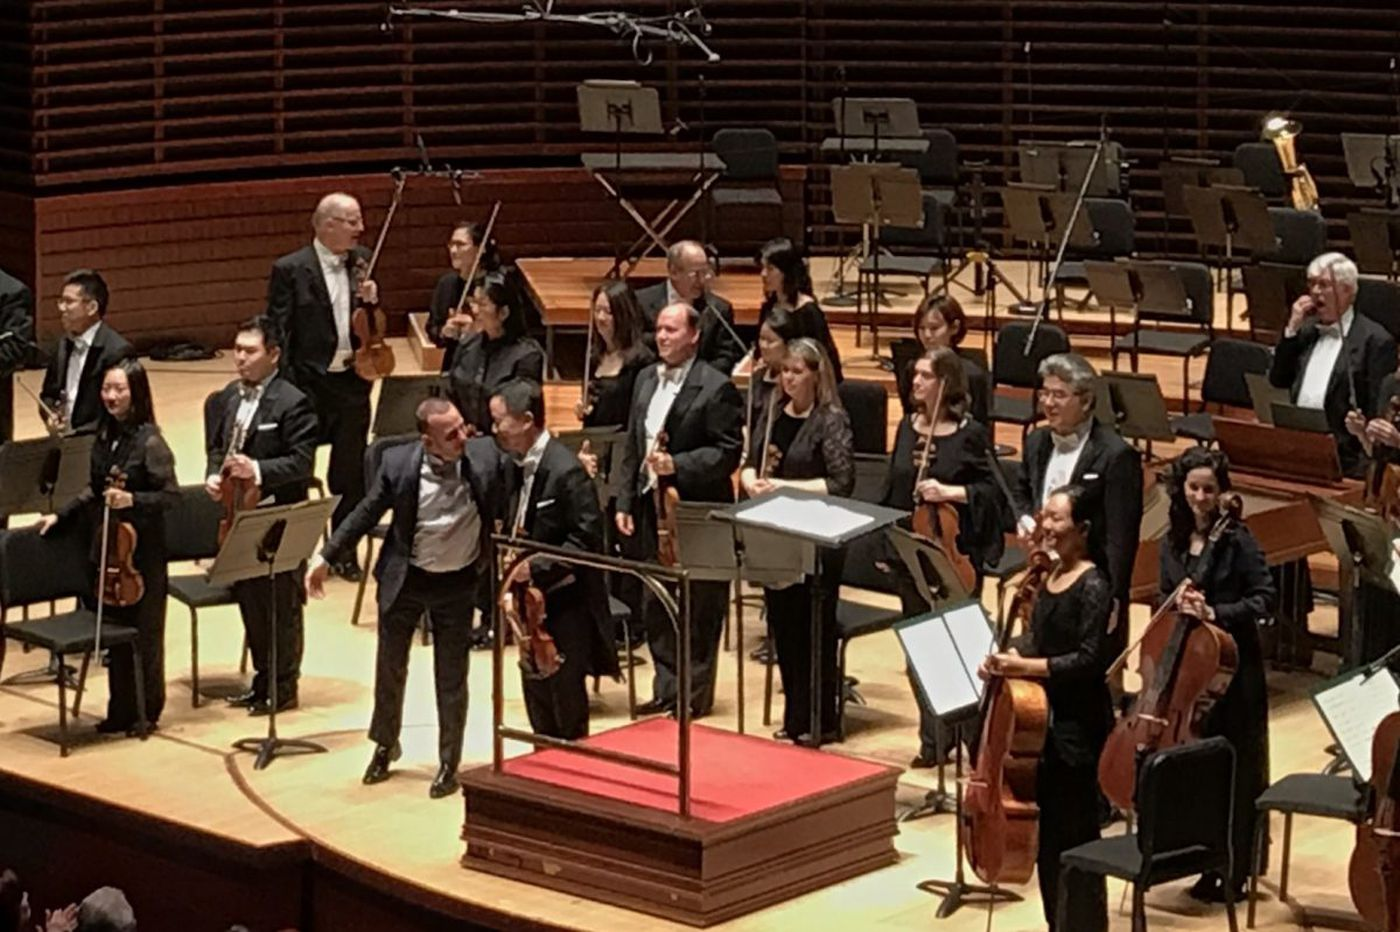 Philadelphia Orchestra's Israel tour enables musicians and supporters to engage with complex reality of Israel | Opinion